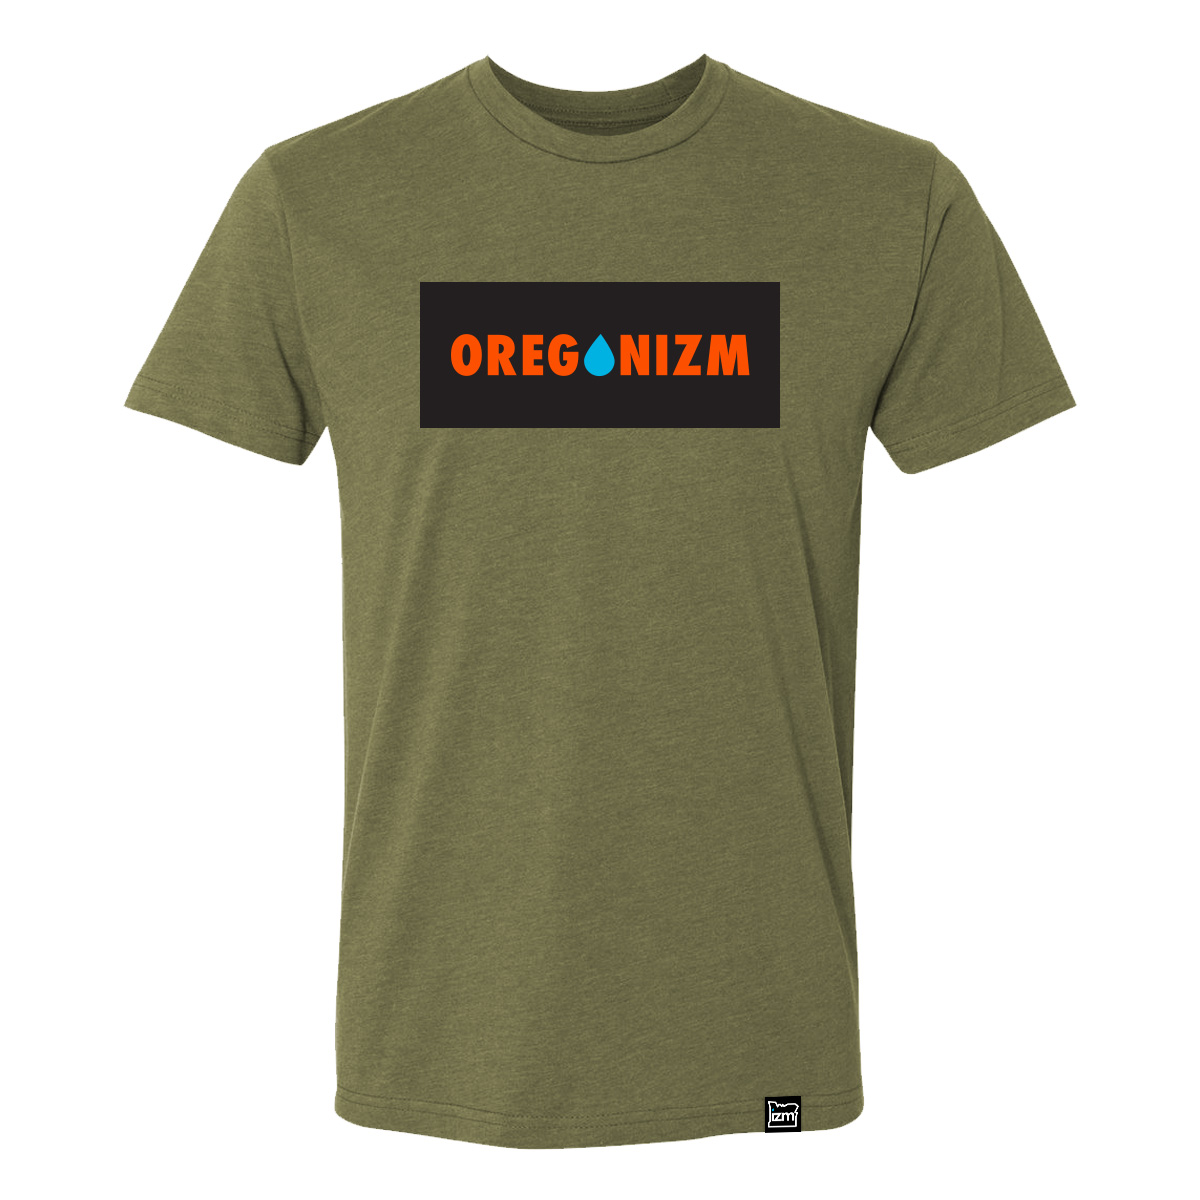 oregonizm-product-tshirt-mens-primary2.0-militarygreen